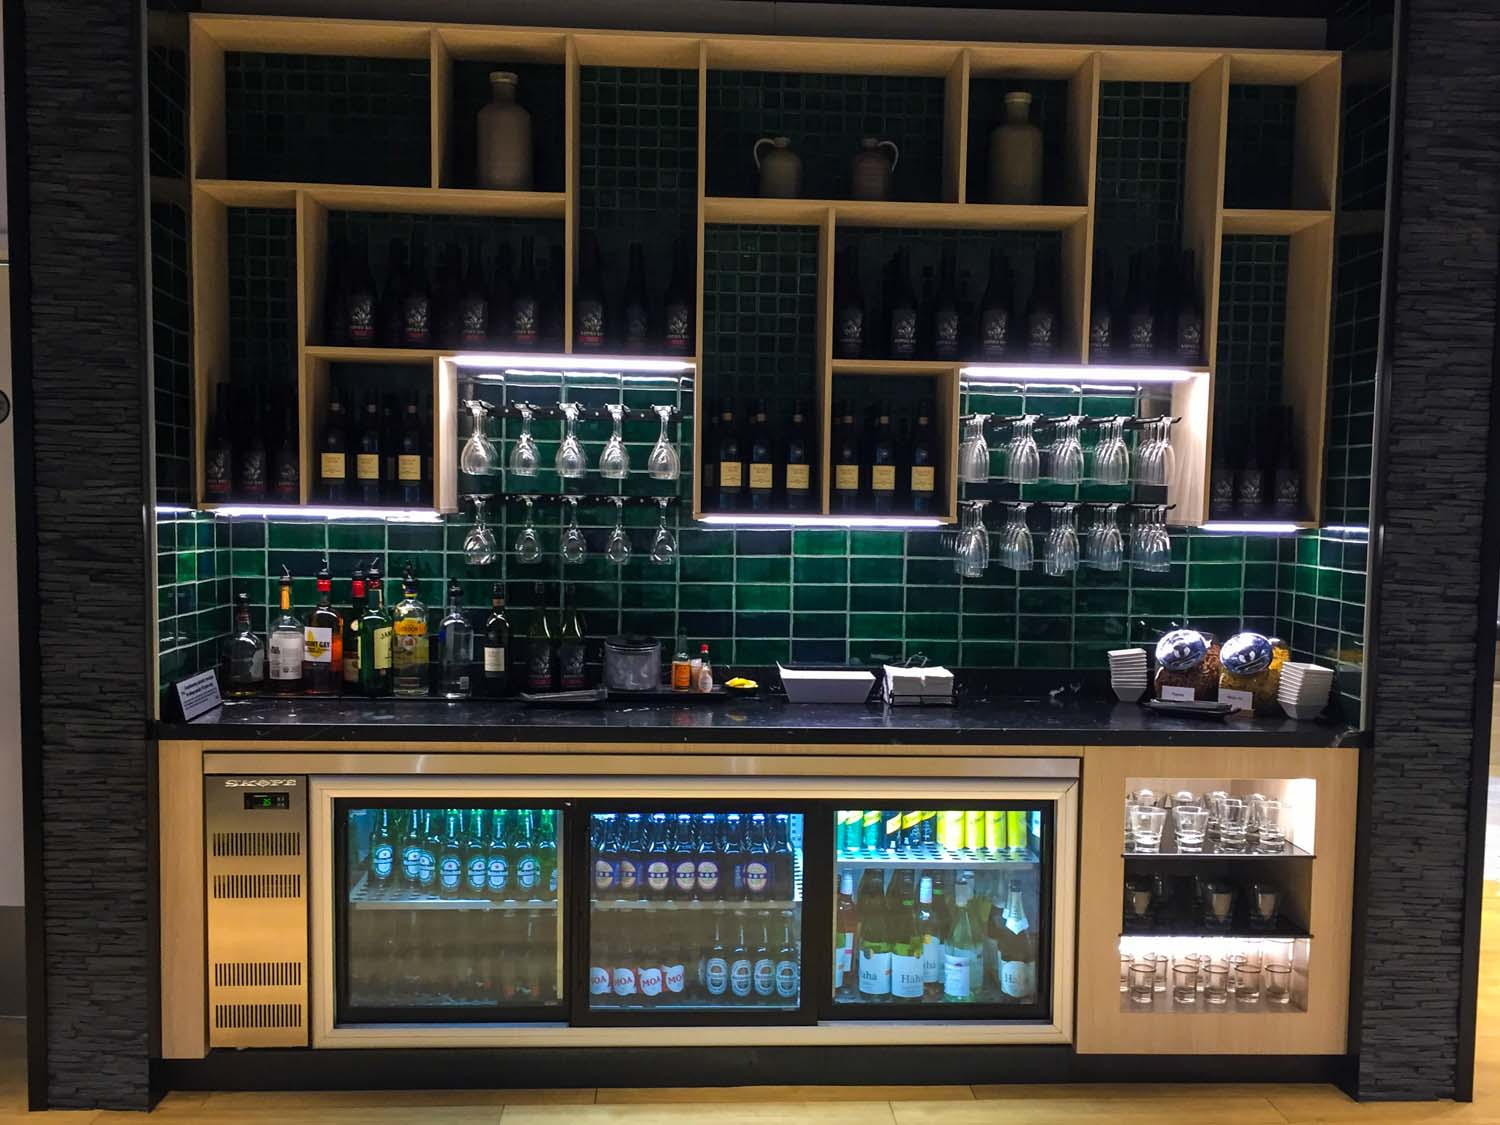 Strata Lounge auckland airport - alcohol